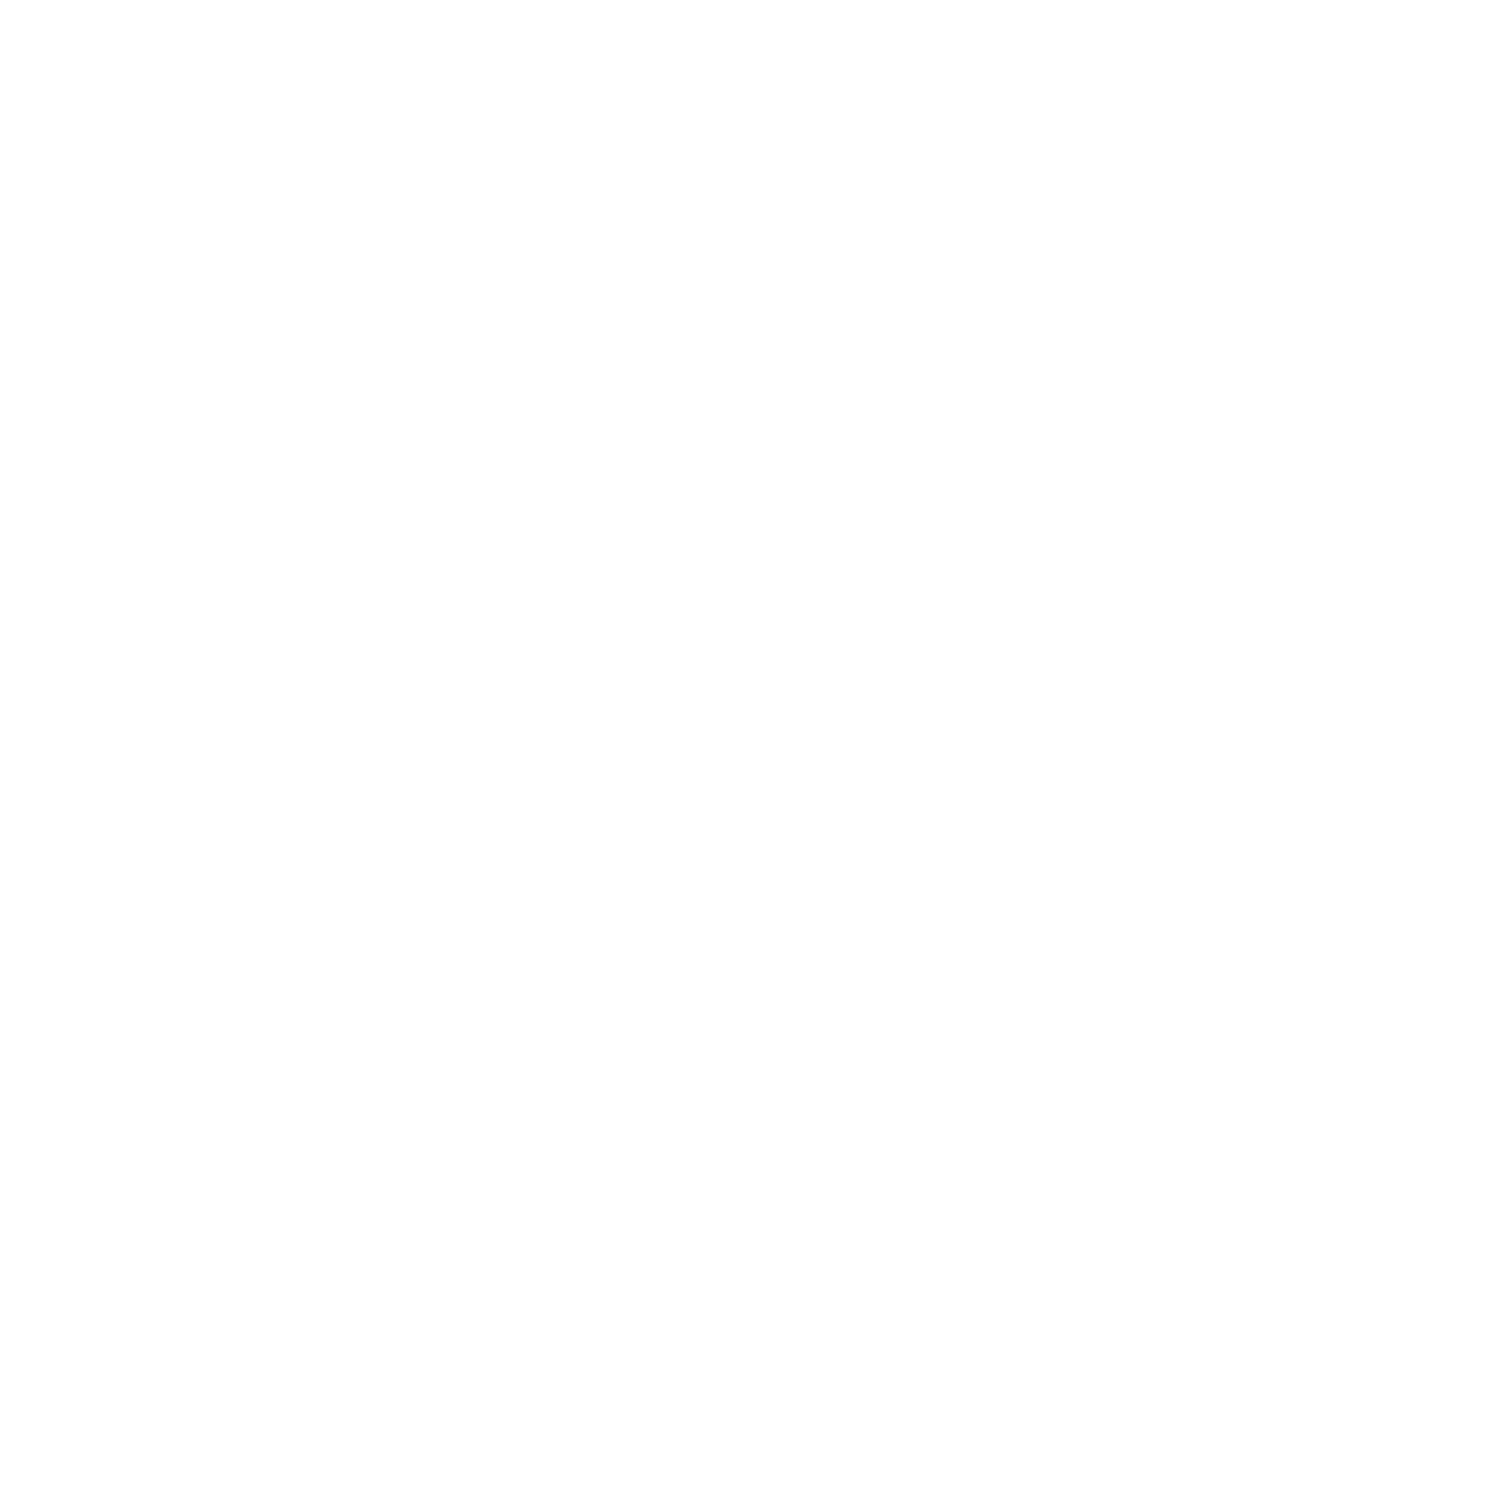 OUTWATER